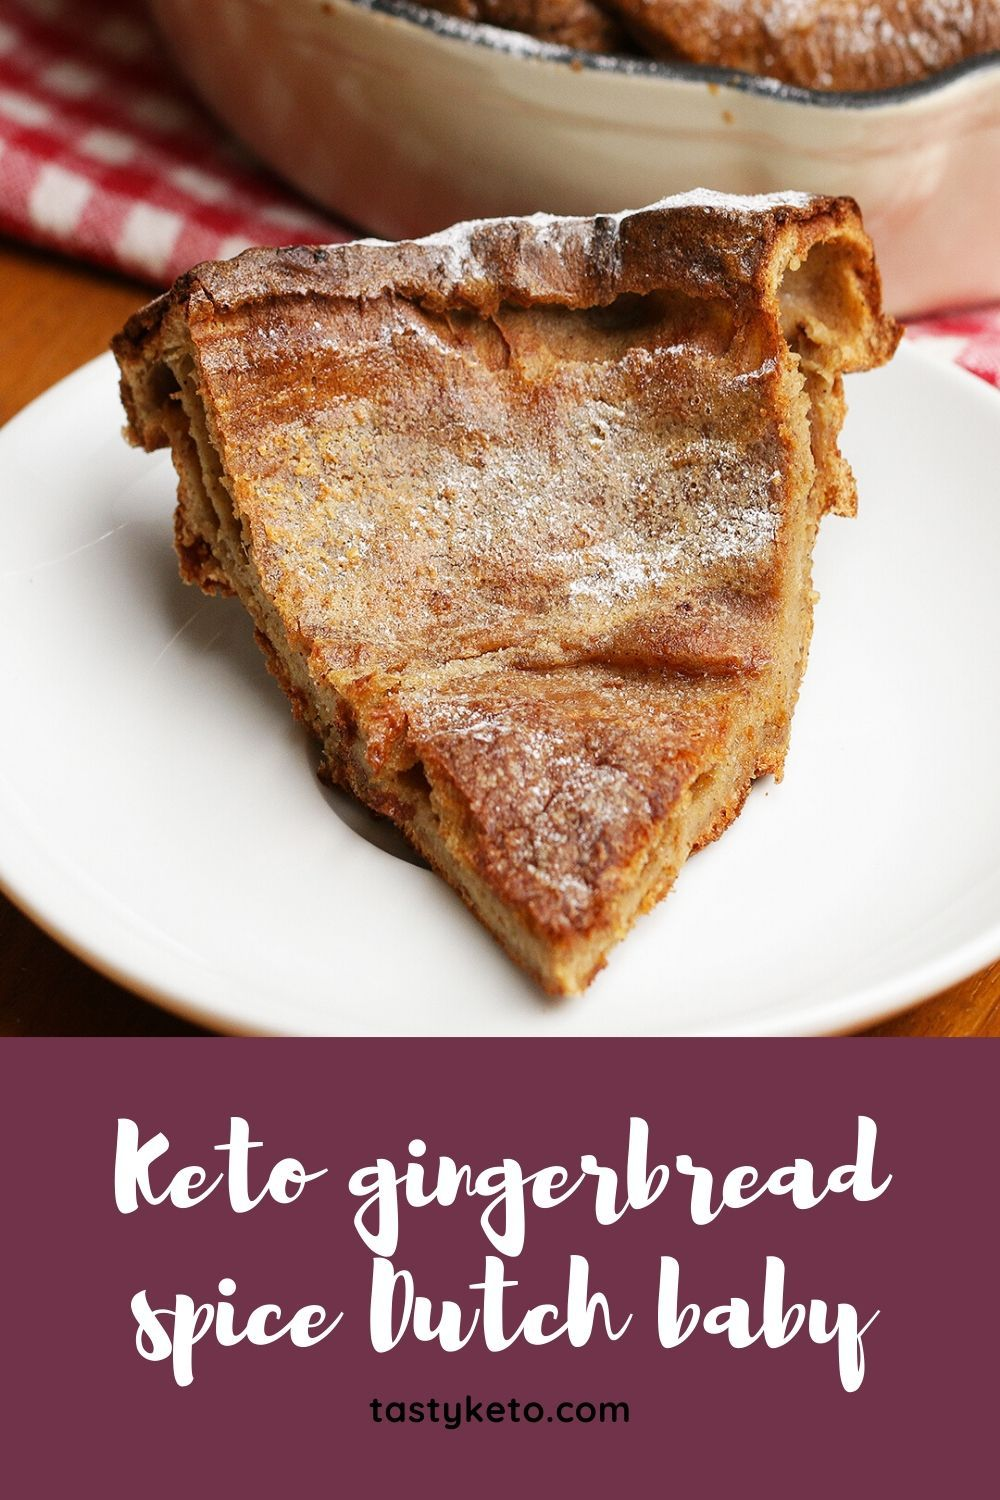 Keto gingerbread spice Dutch baby